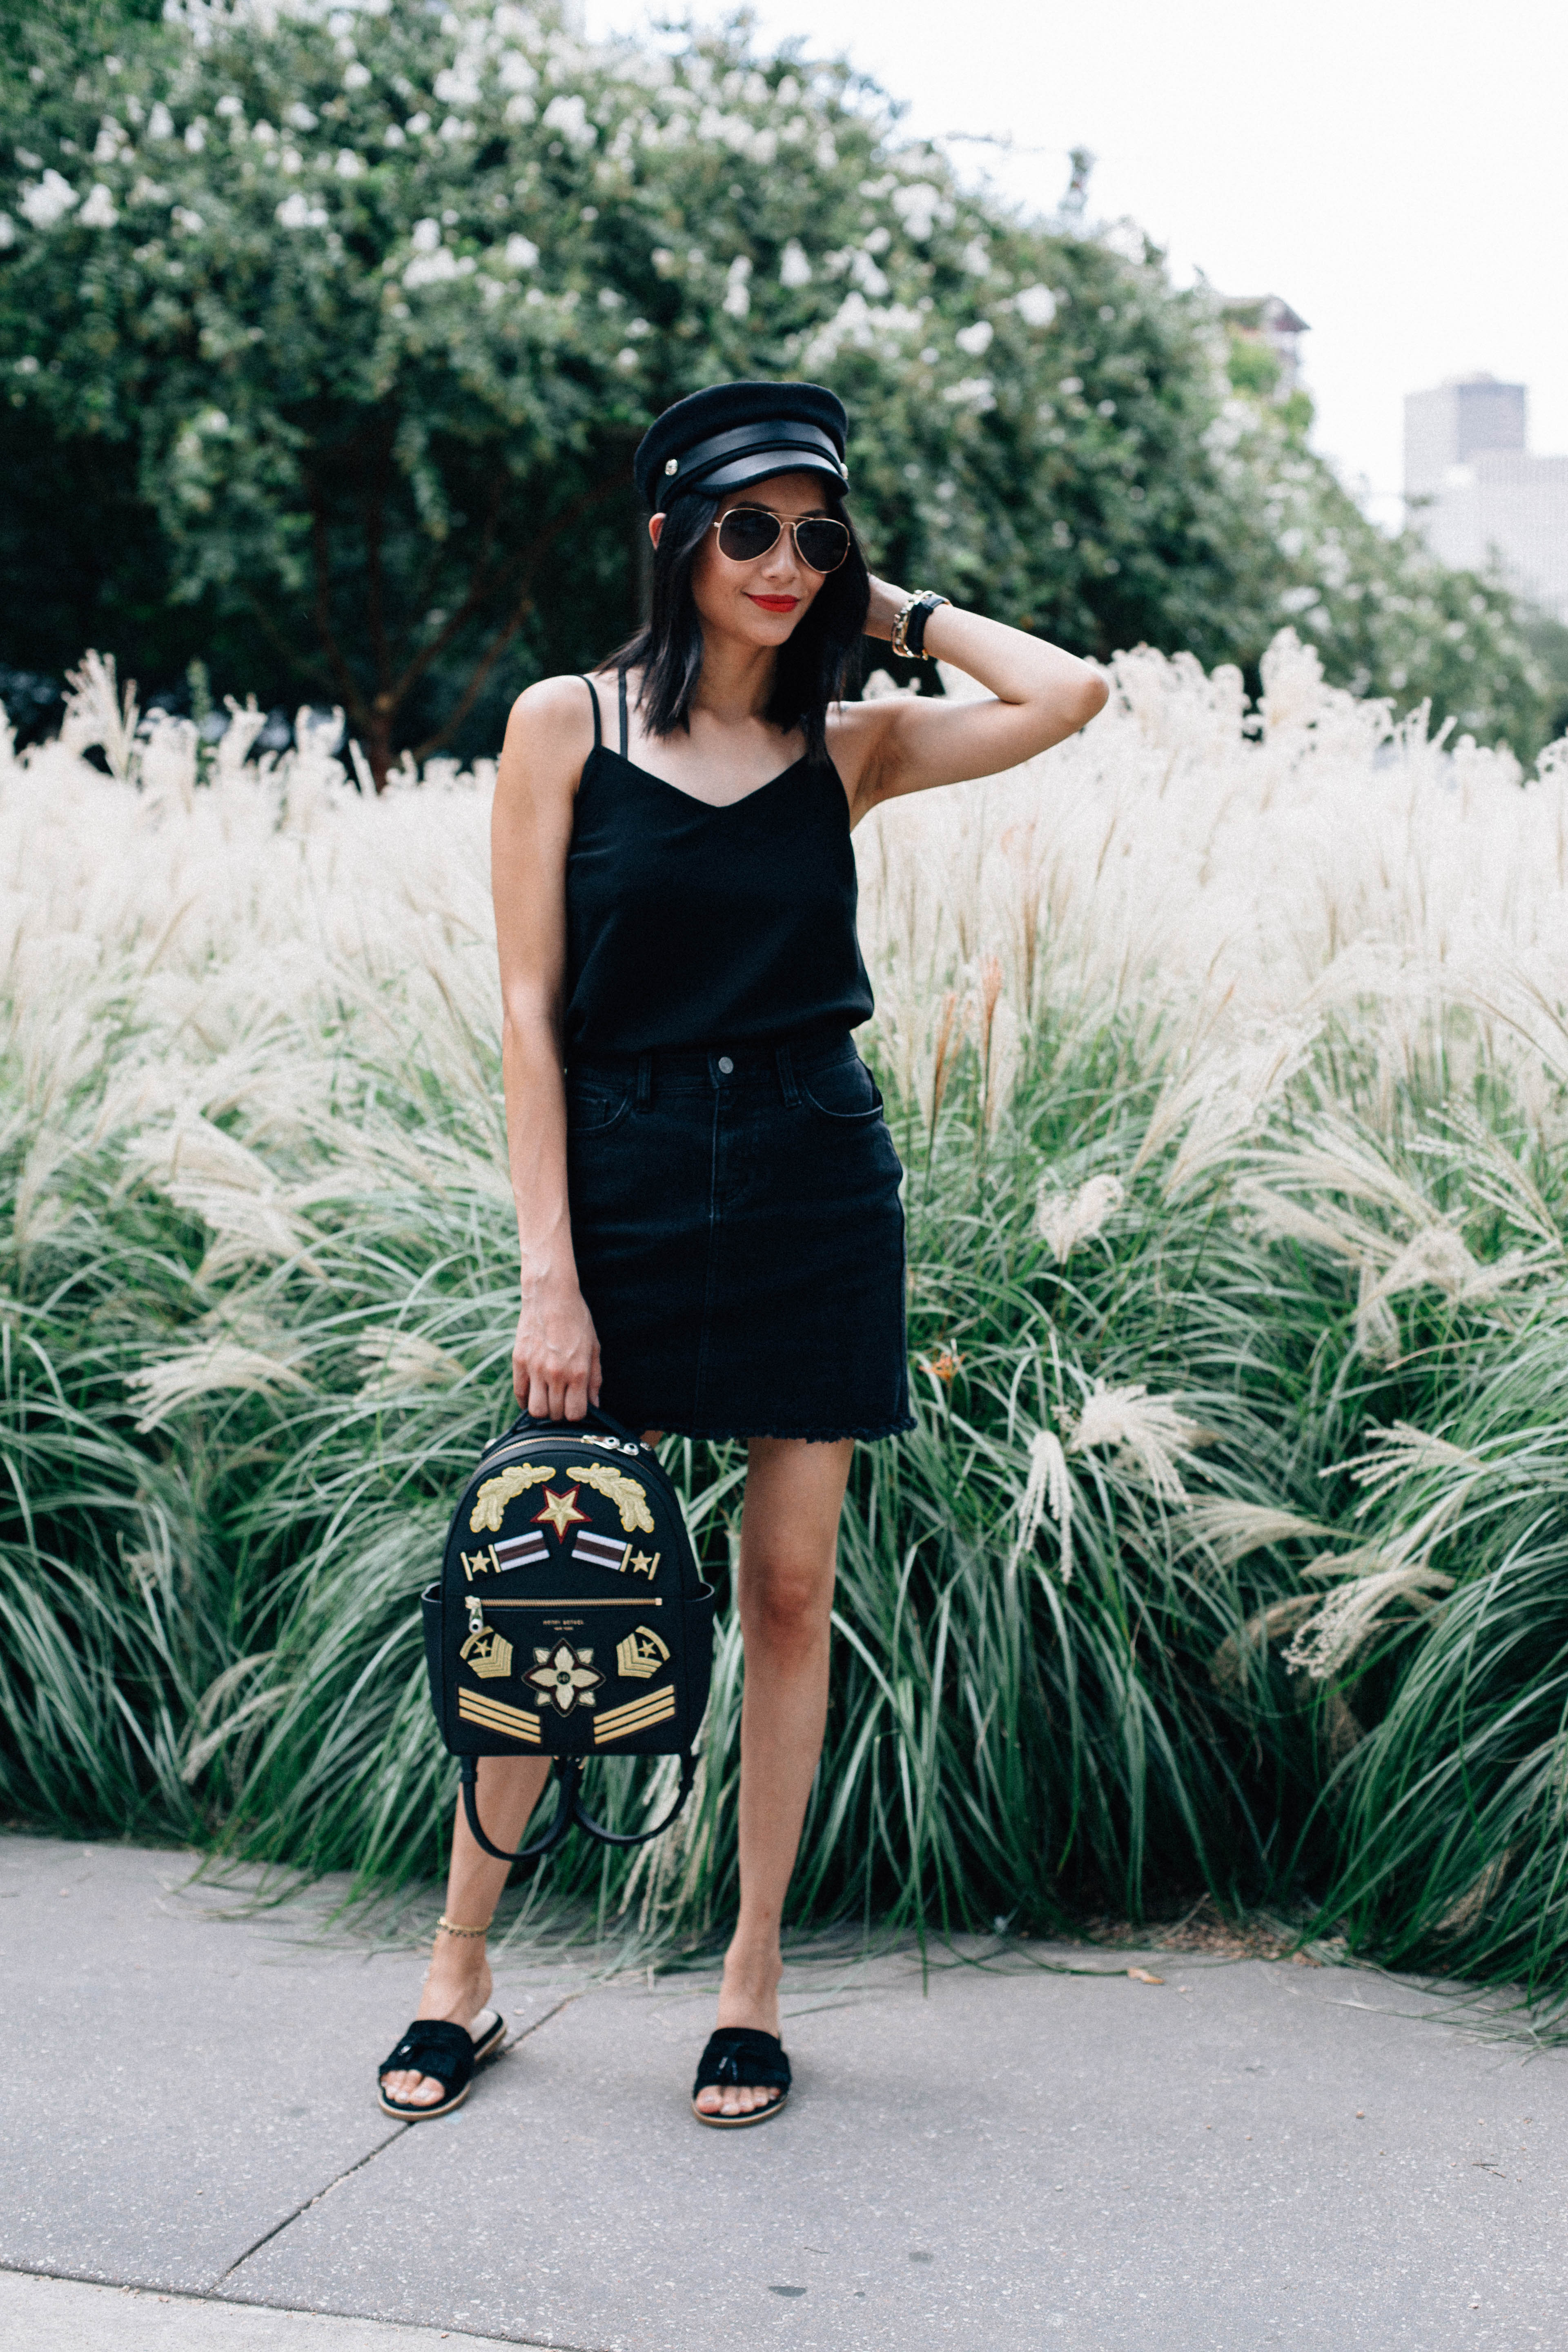 Fashion blogger Lilly Beltran styles a monochromatic ook for spring with a black denim skirt, fisherman hat and a red lip